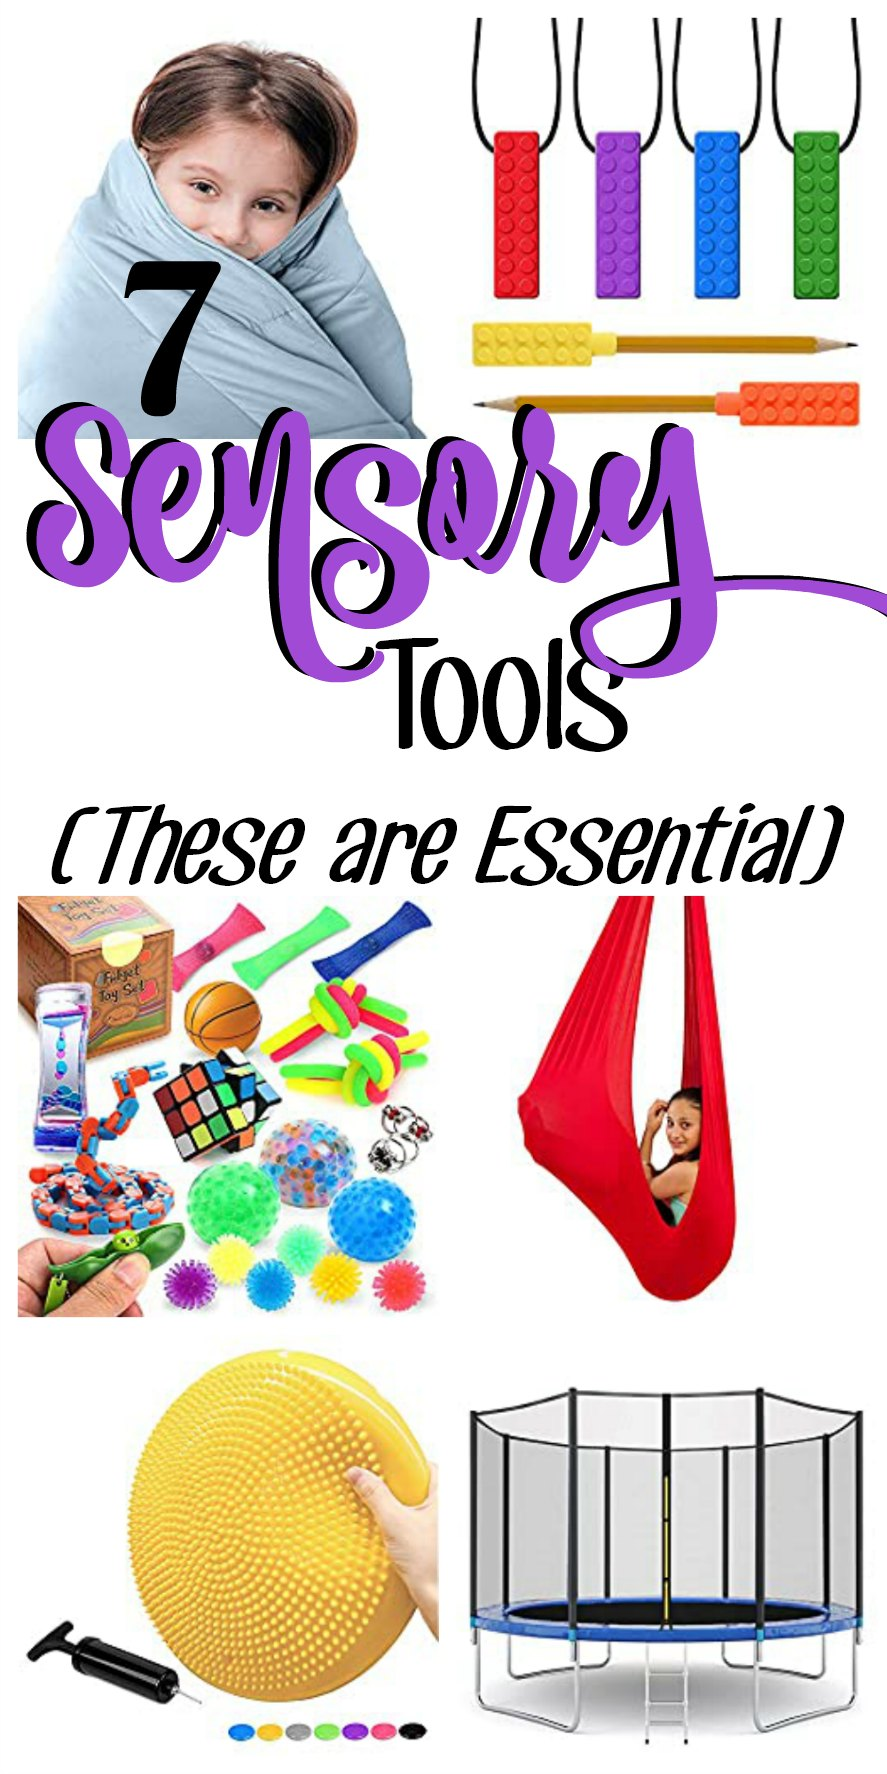 Effective and Versatile Sensory Toys Every Single Home Should Have